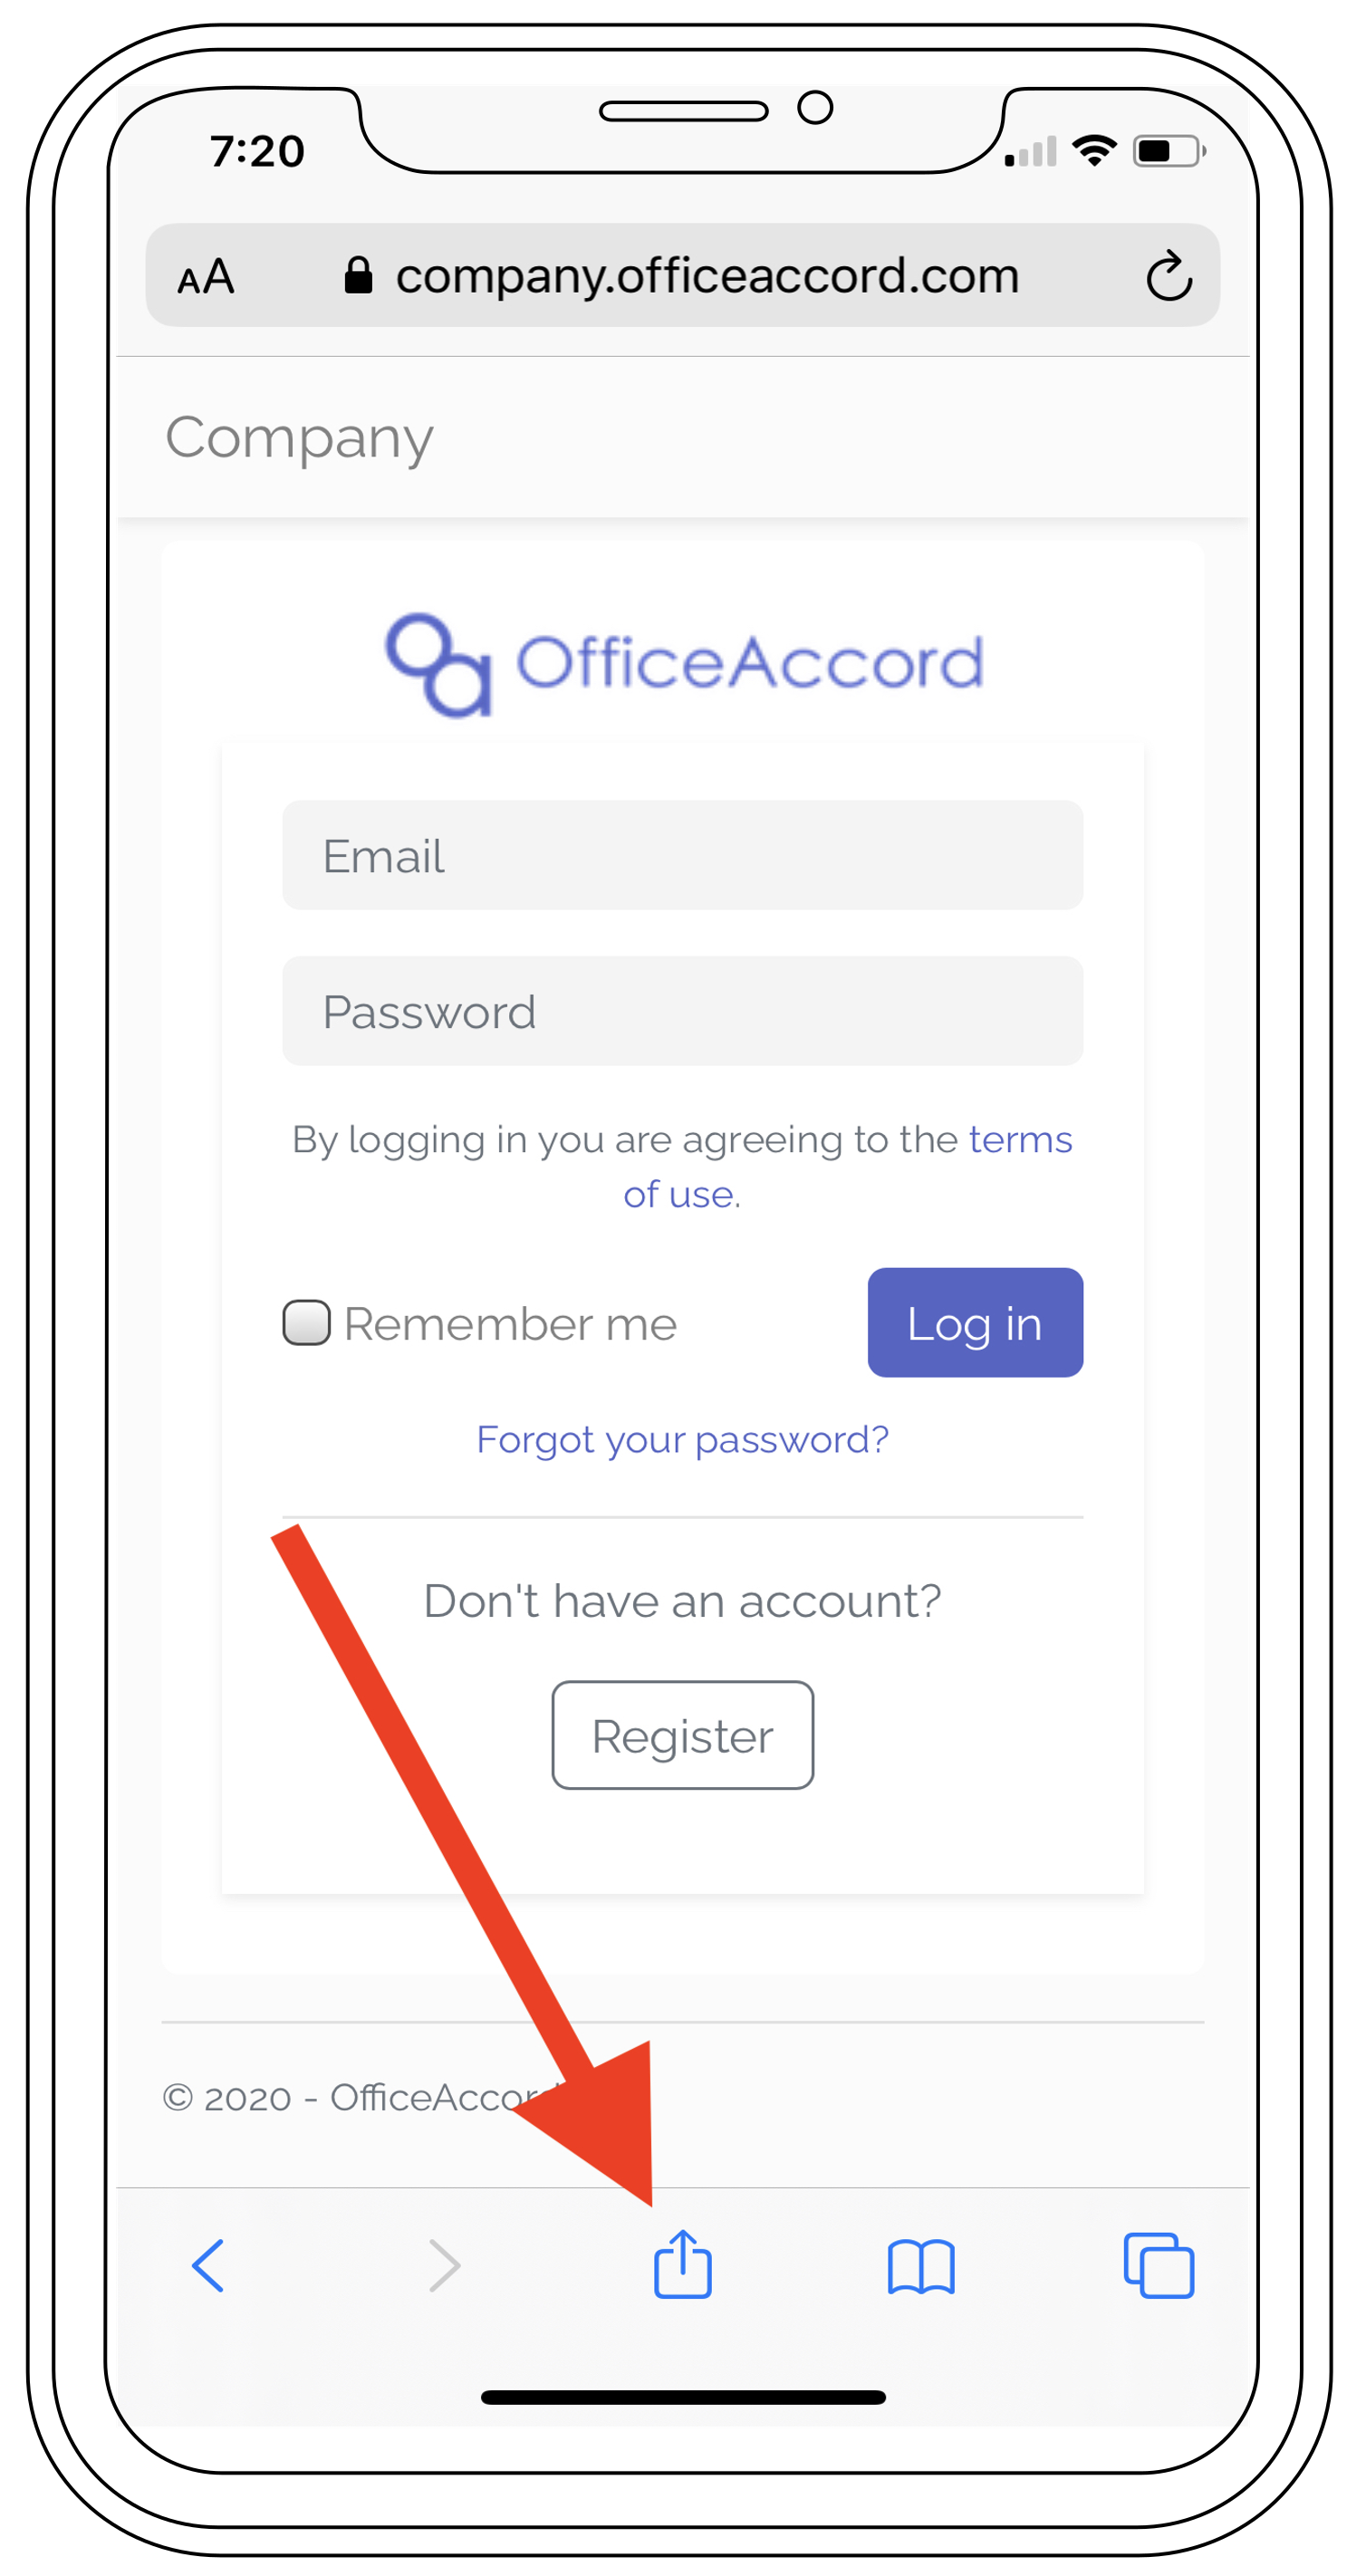 Step 1 of the officeaccord Apple iOS web app download process showing a wireframe of the OfficeAccord mobile web app for remote employee onboarding, community management and office management software